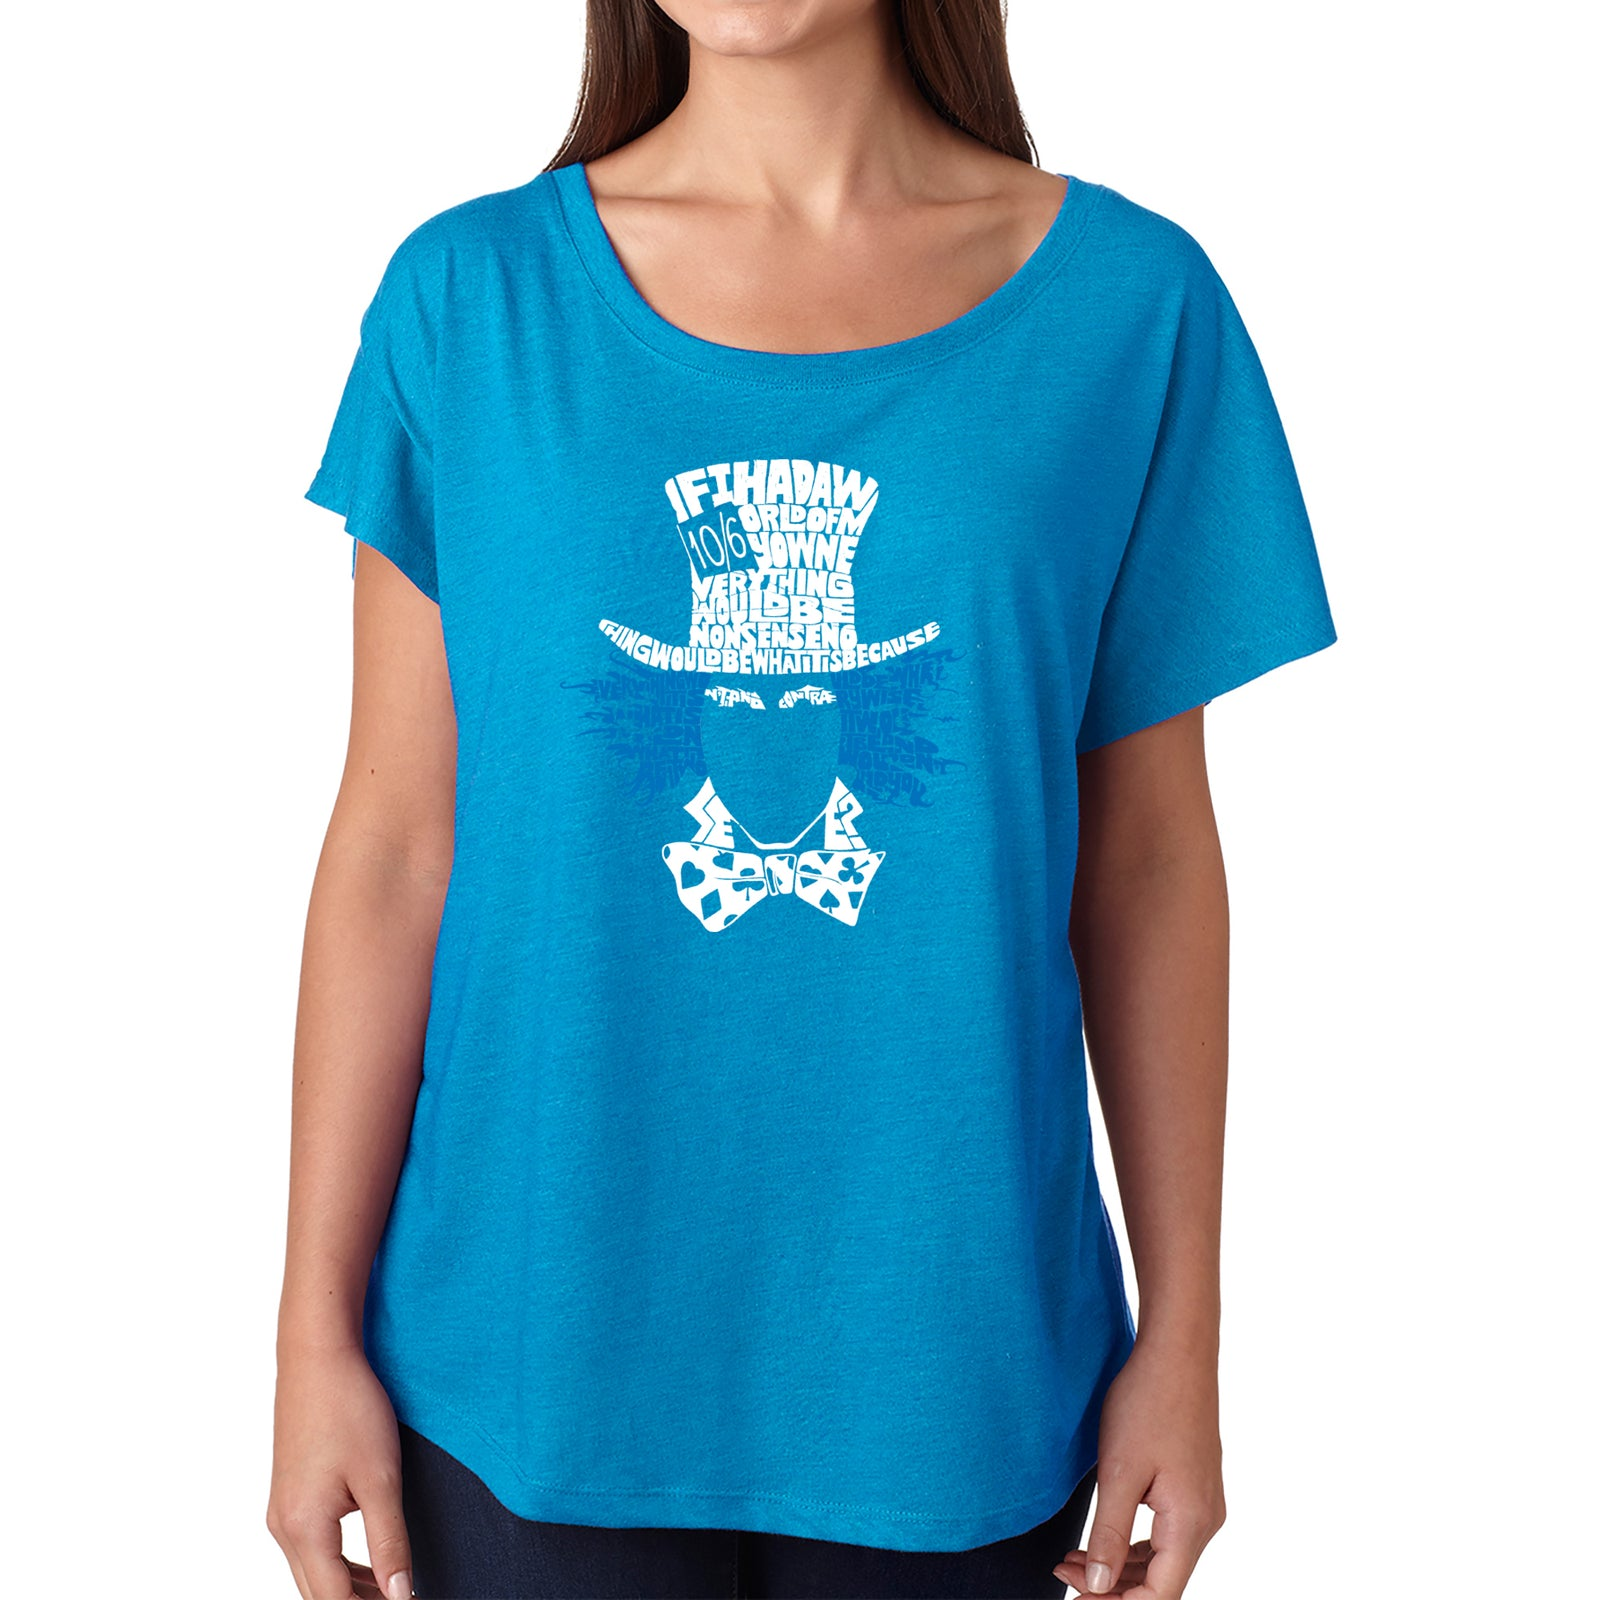 Women's Loose Fit Dolman Cut Word Art Shirt - The Mad Hatter